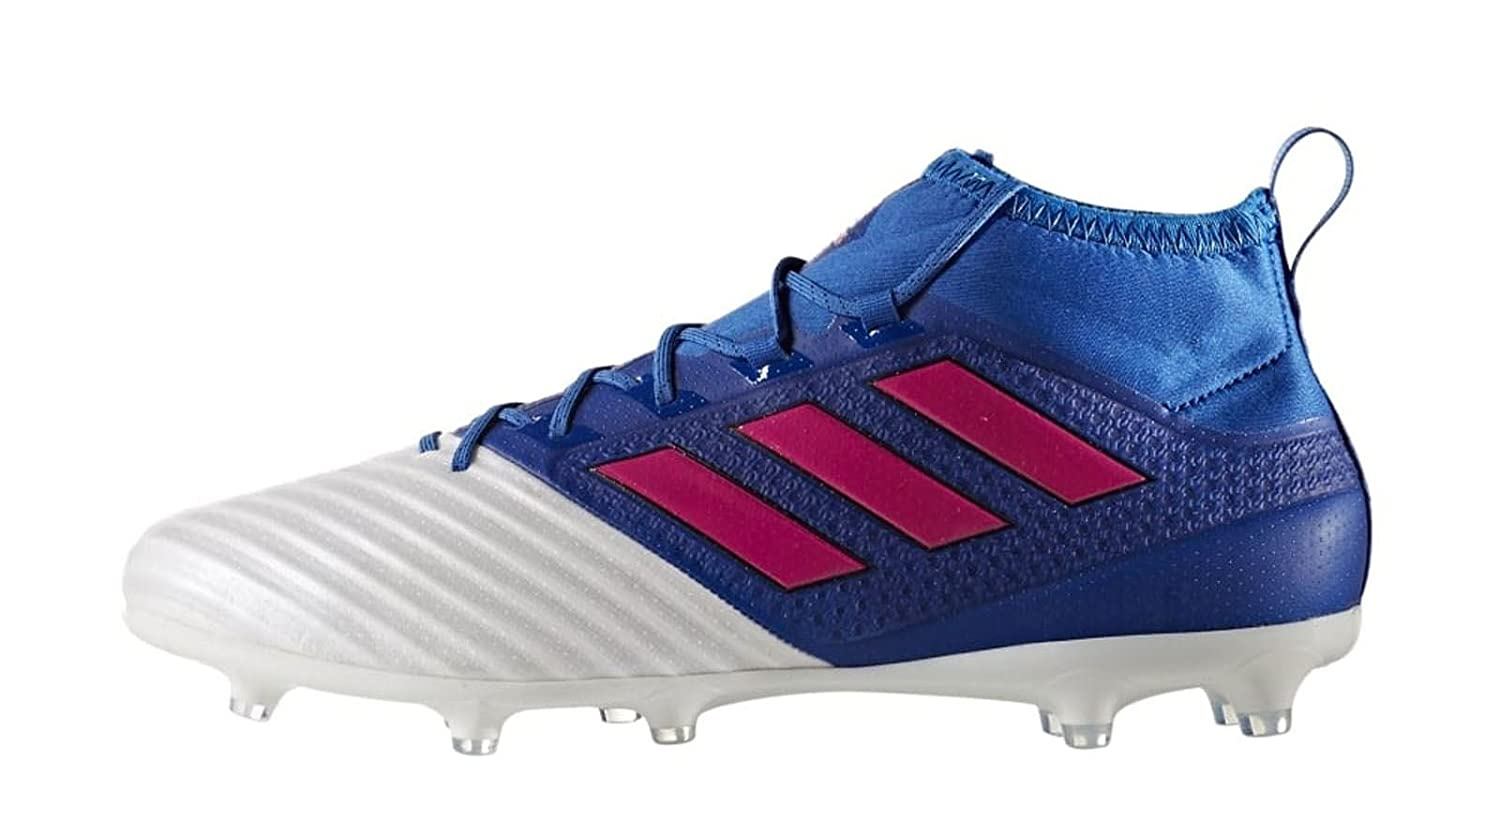 397f2c10 Amazon.com | adidas Performance Mens ACE 17.2 Primemesh FG Football Boots |  Soccer